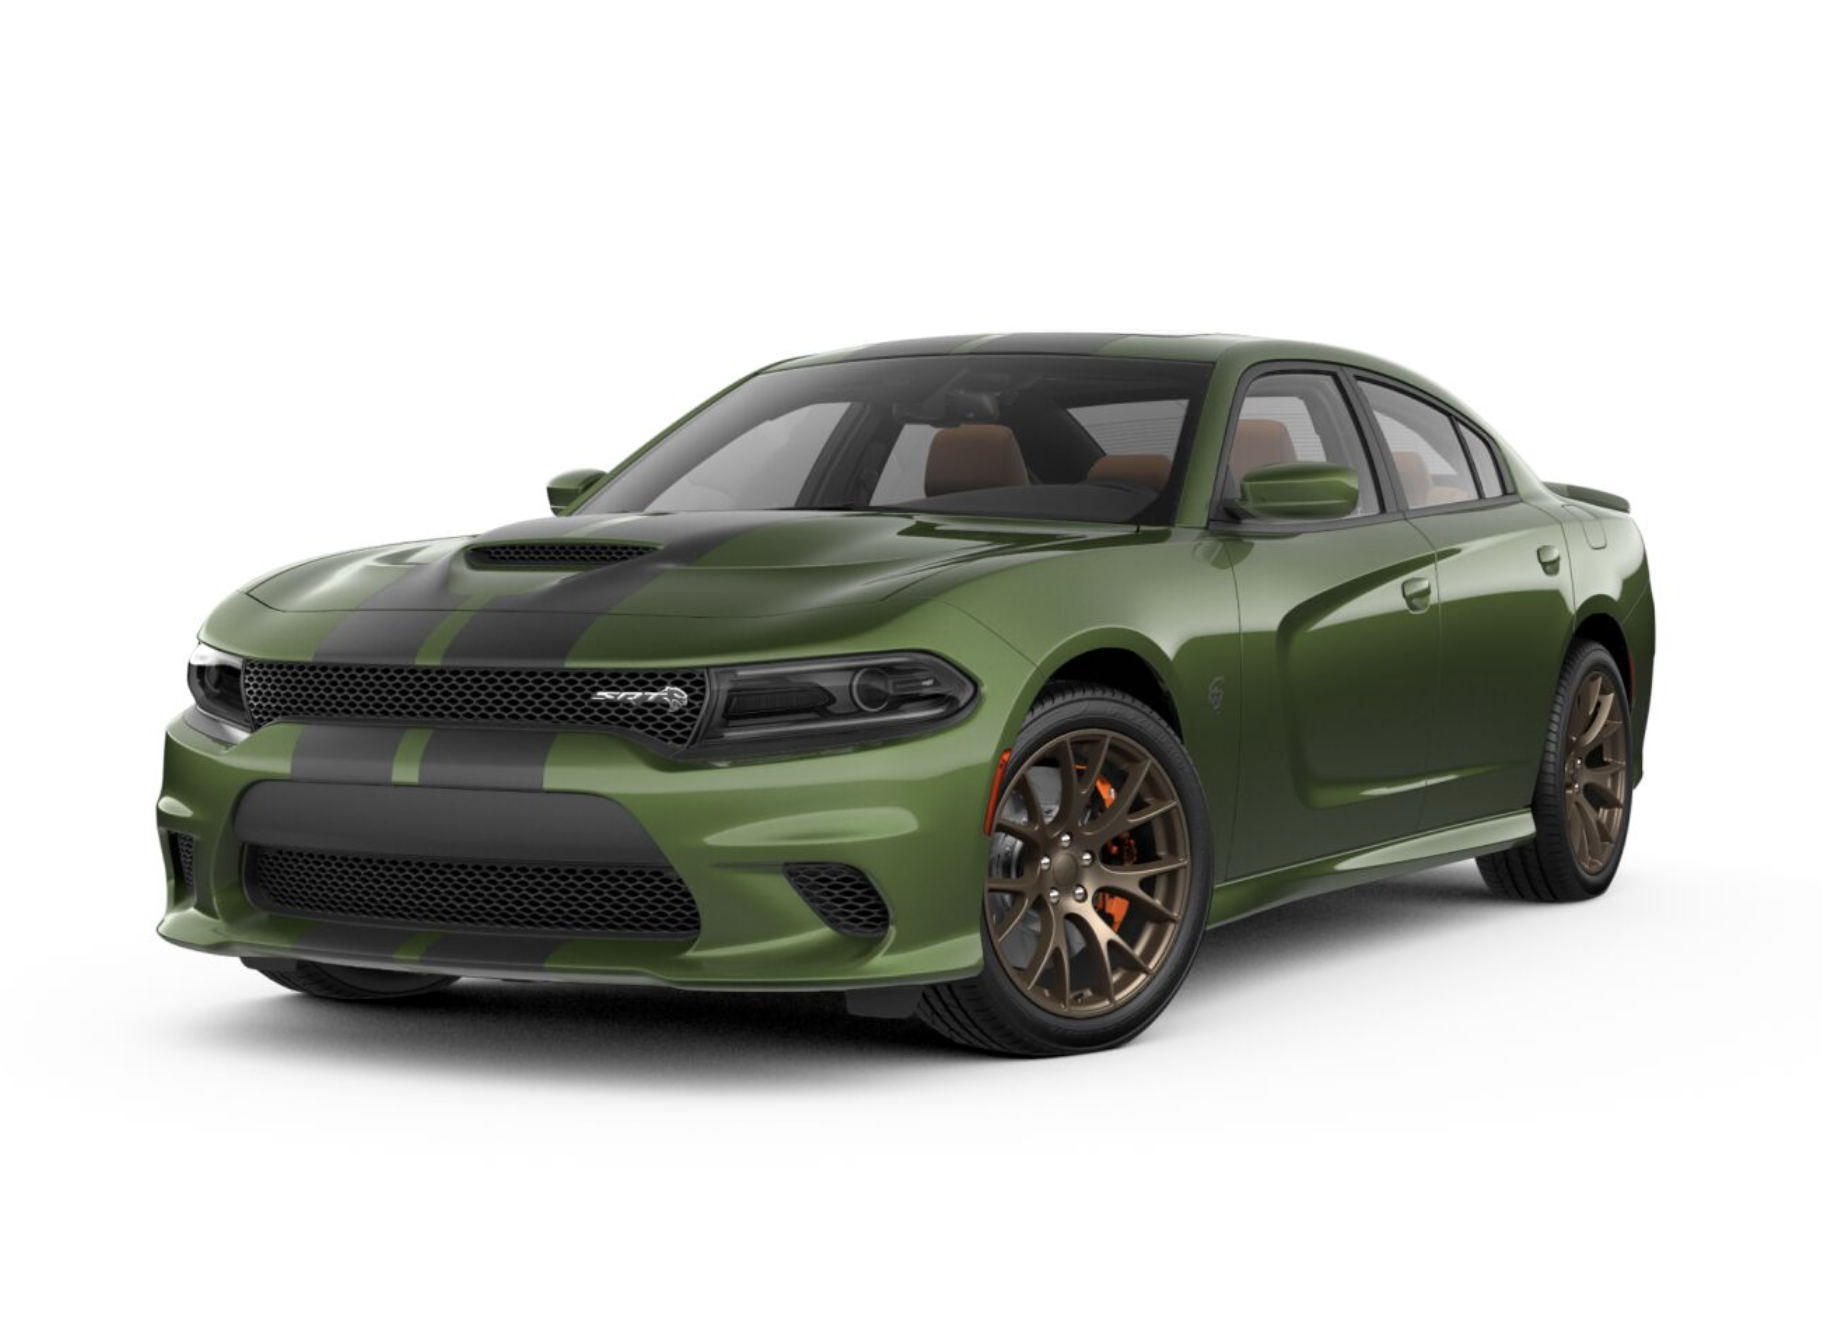 2018 Dodge Charger Hellcat Specced Just The Way I Like It Including Sepia Colored Seats Dodge Charger Hellcat 2018 Dodge Charger Hellcat 2018 Dodge Charger